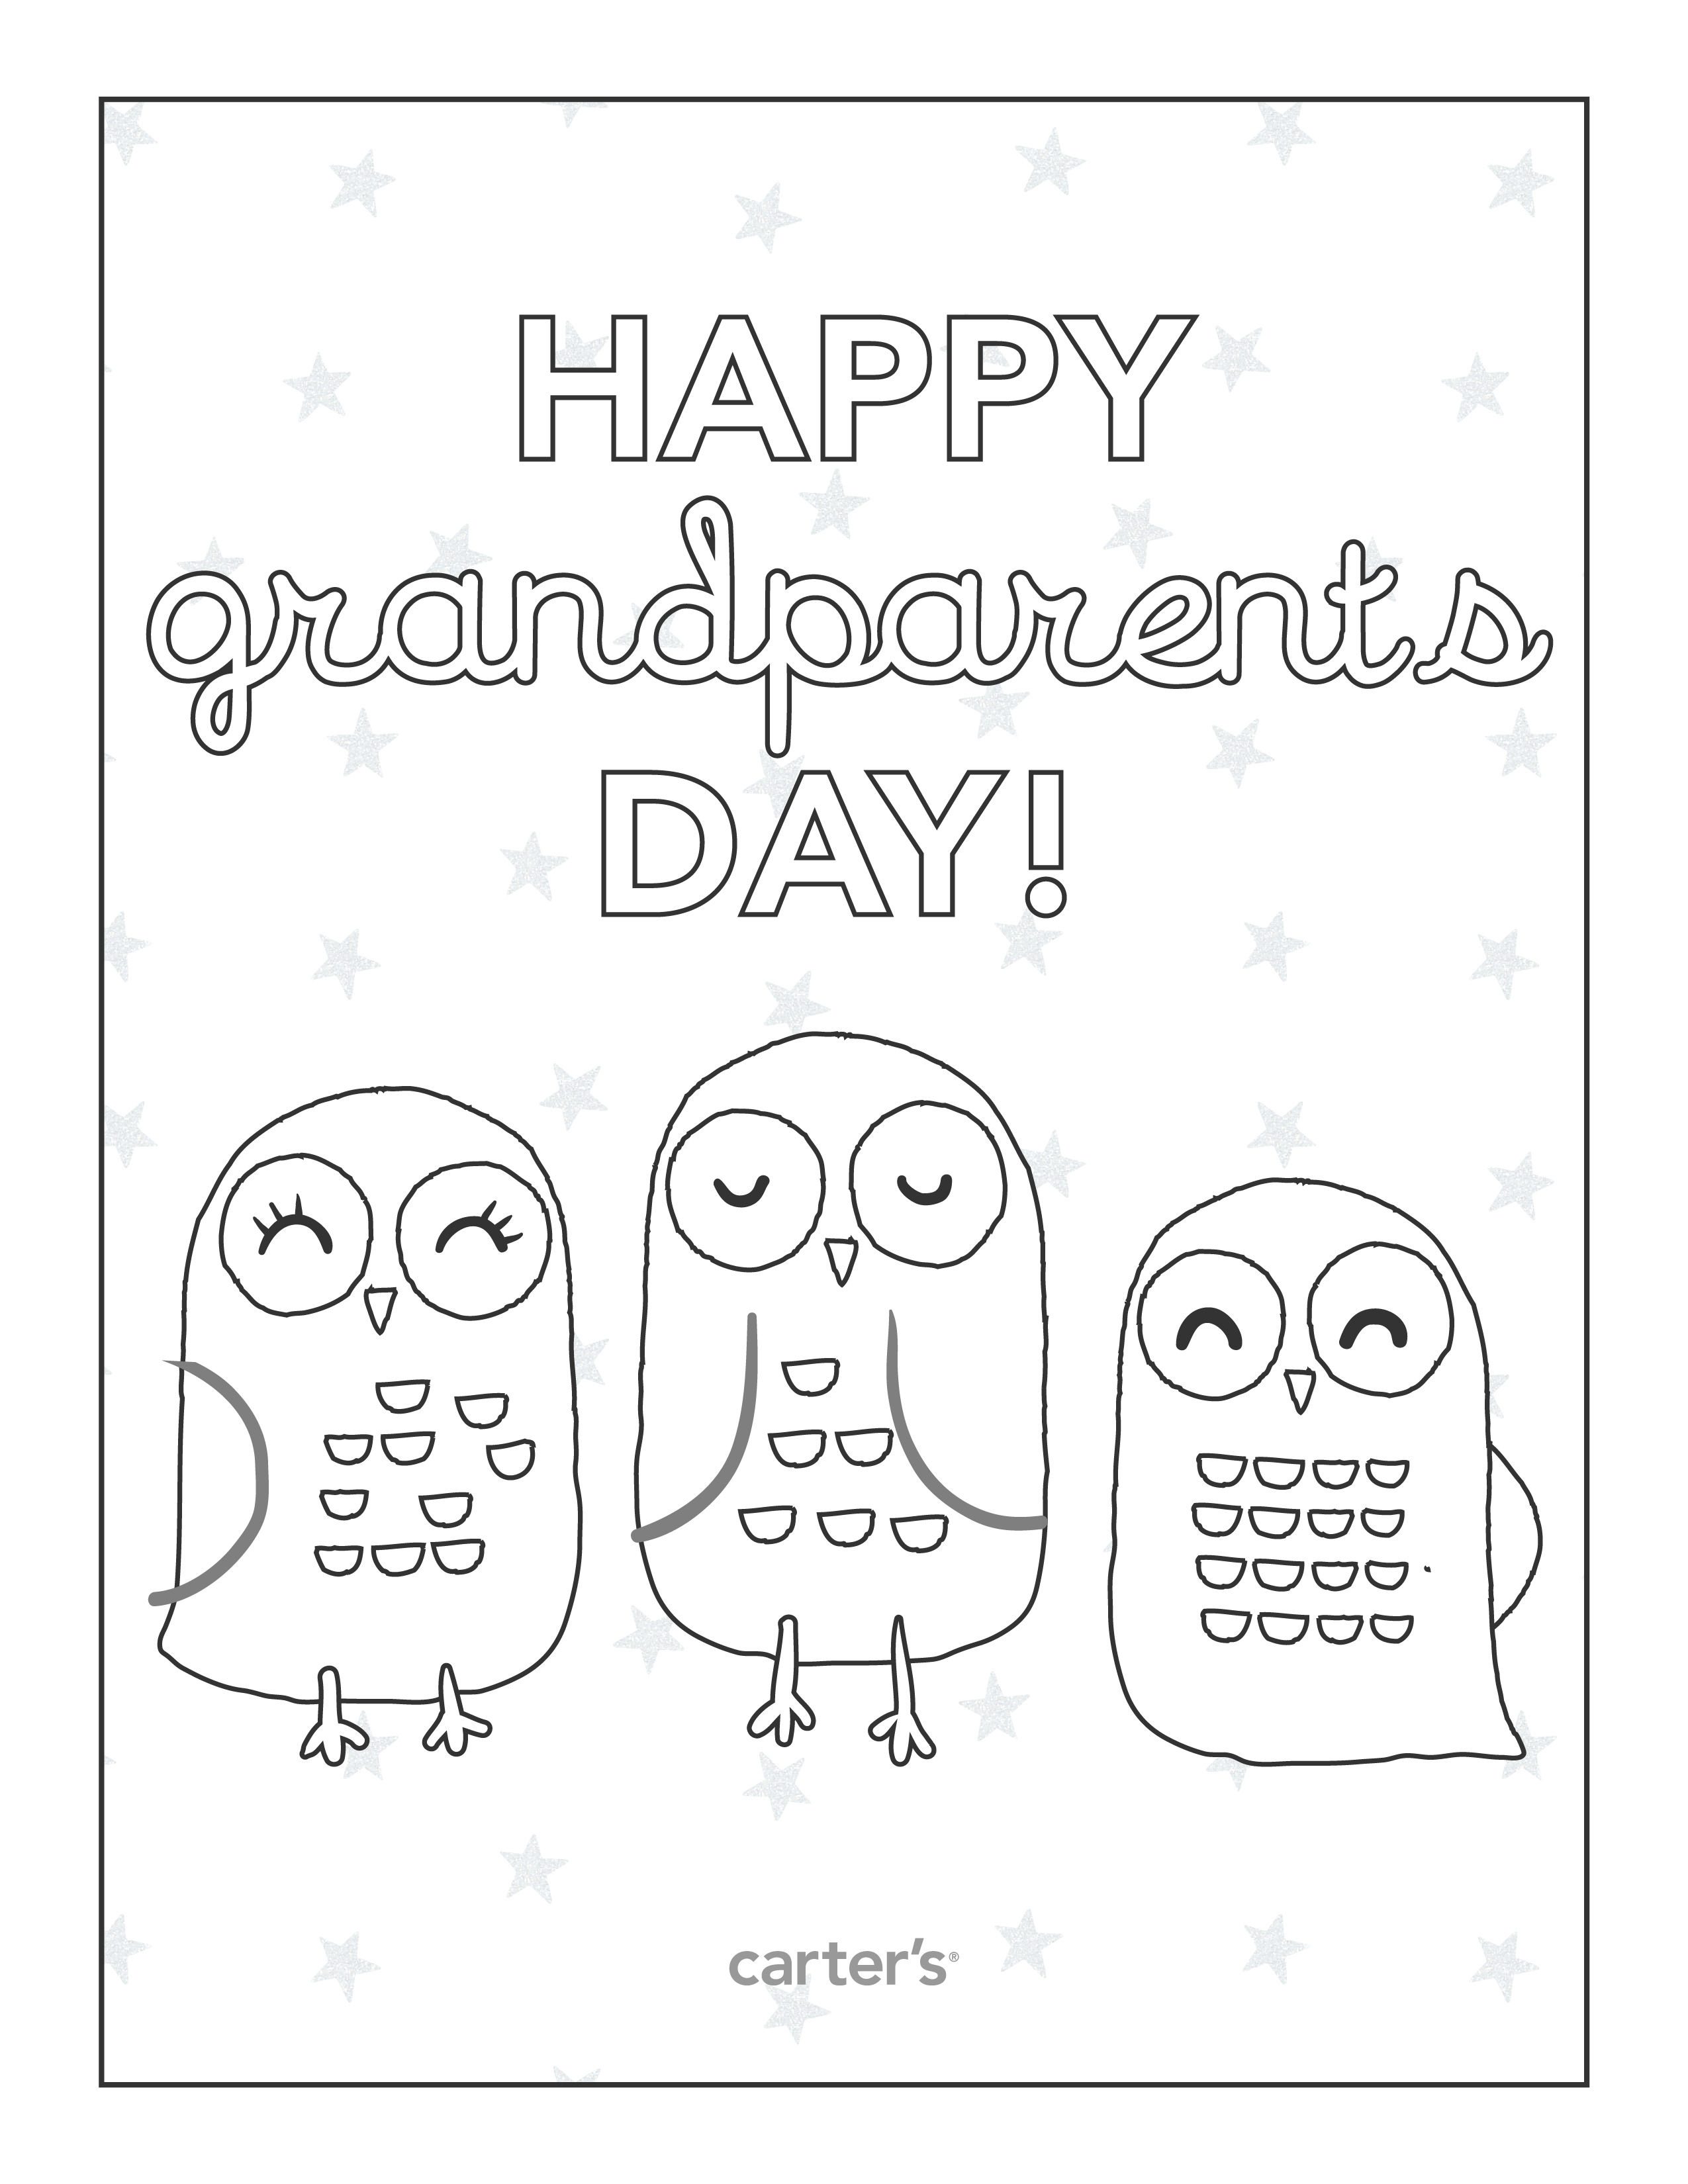 Free Printable Grandparents Day Coloring Pages From Carter's - Grandparents Certificate Free Printable